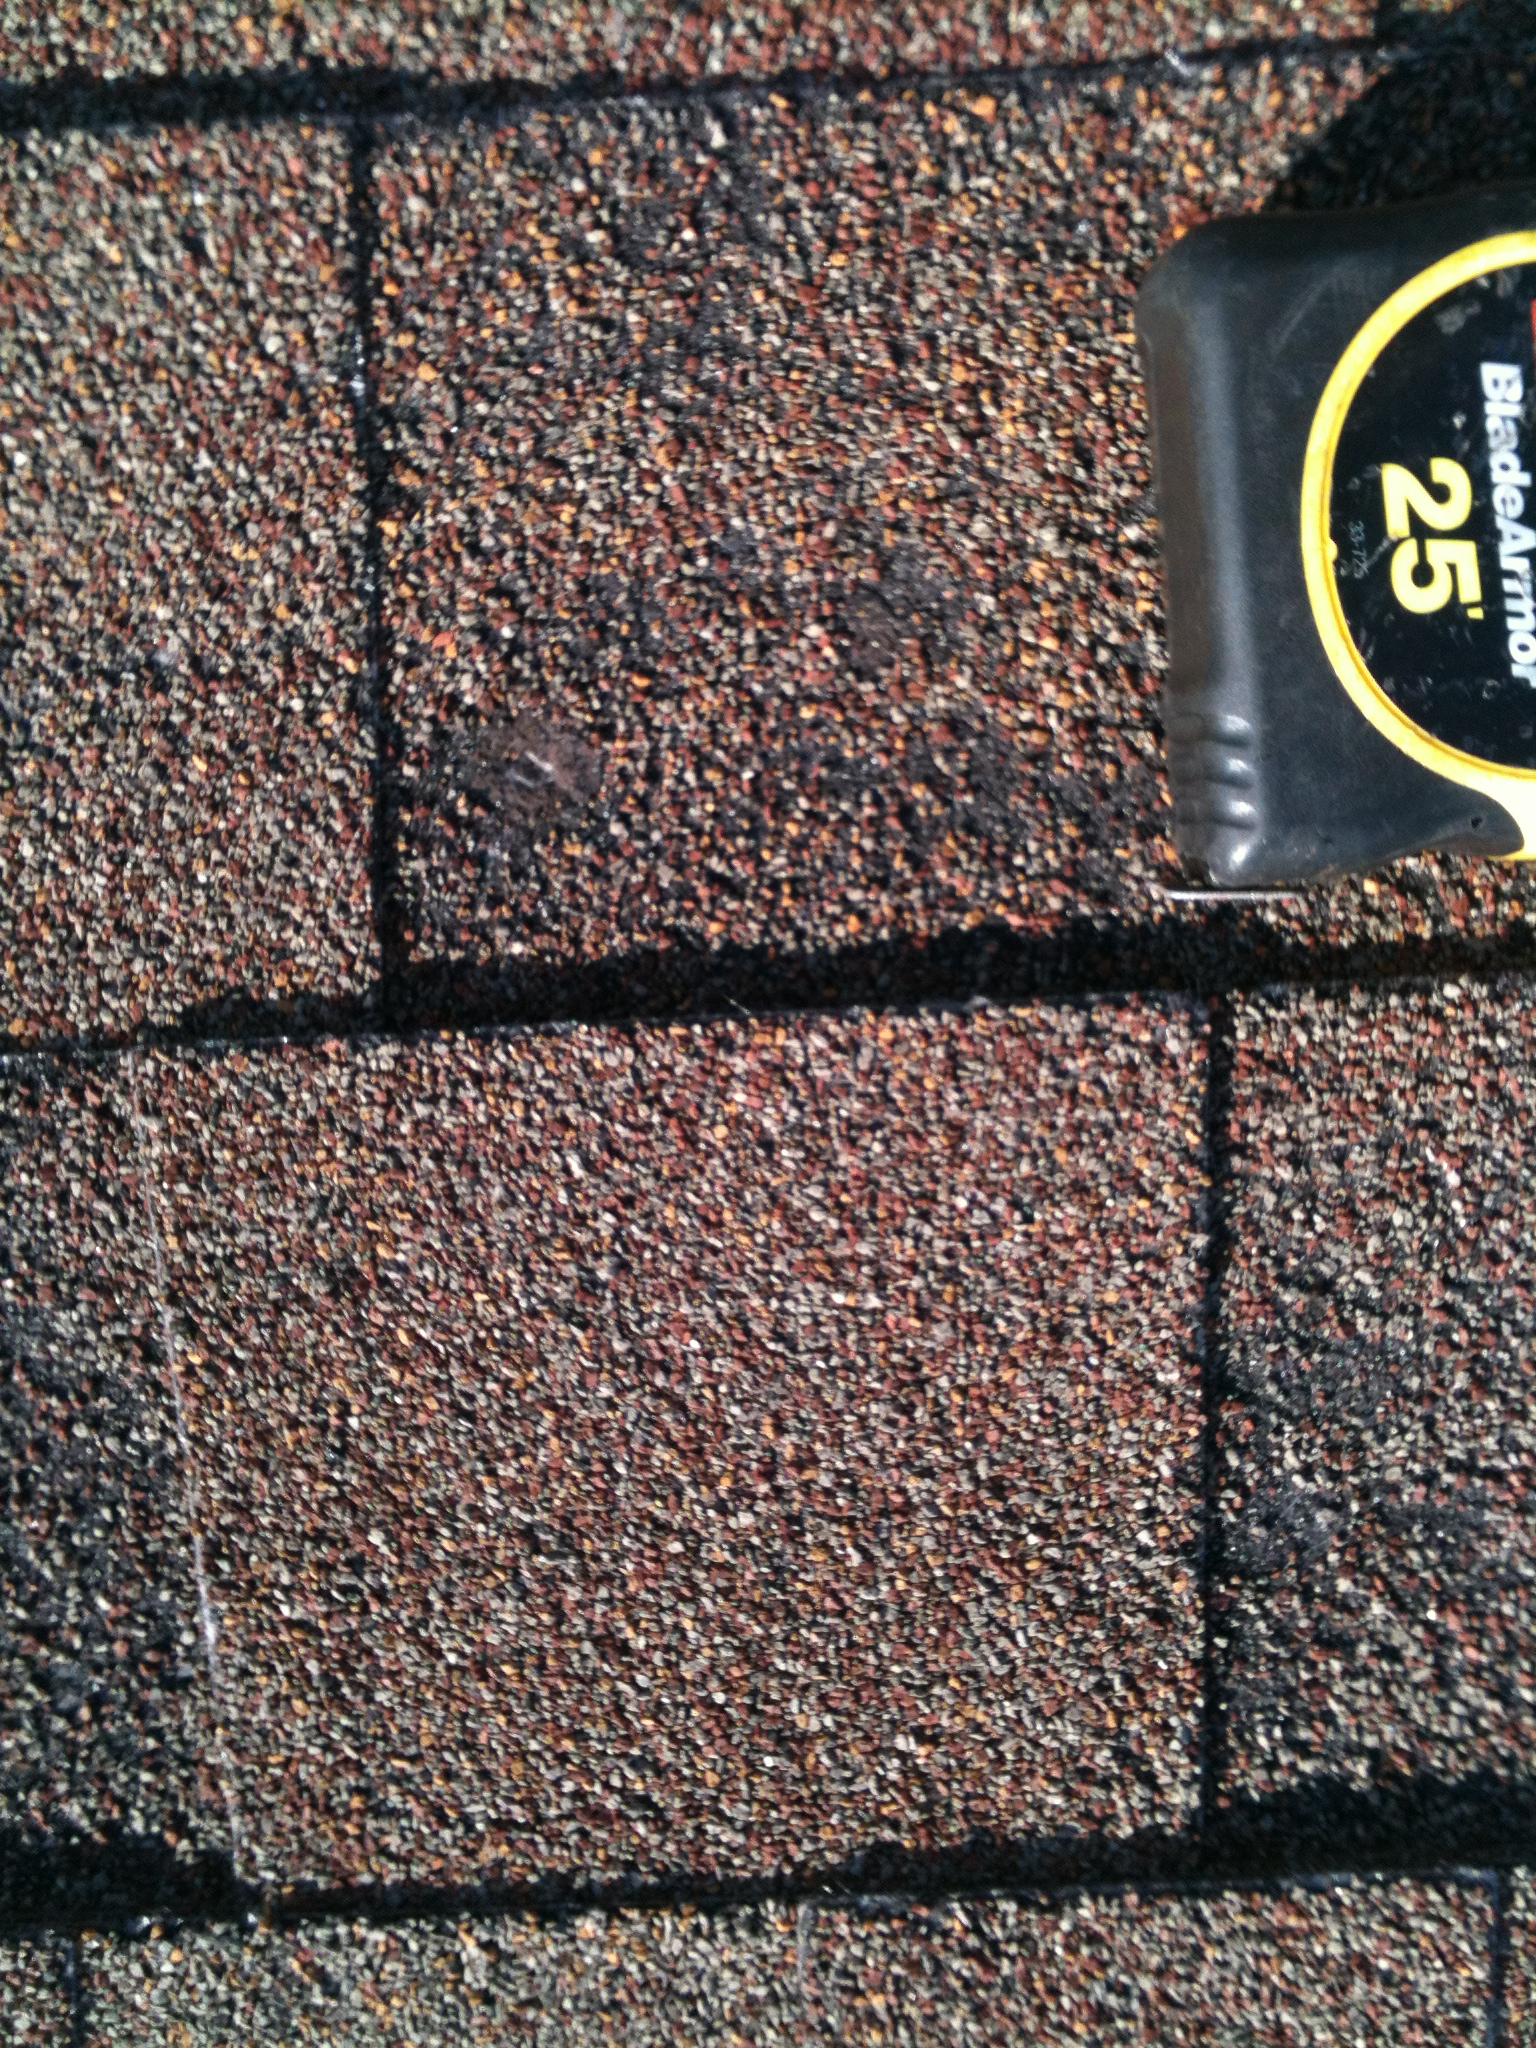 Shingle Hail Damage - Repairs Needed Call Texas Built Roofing Waco